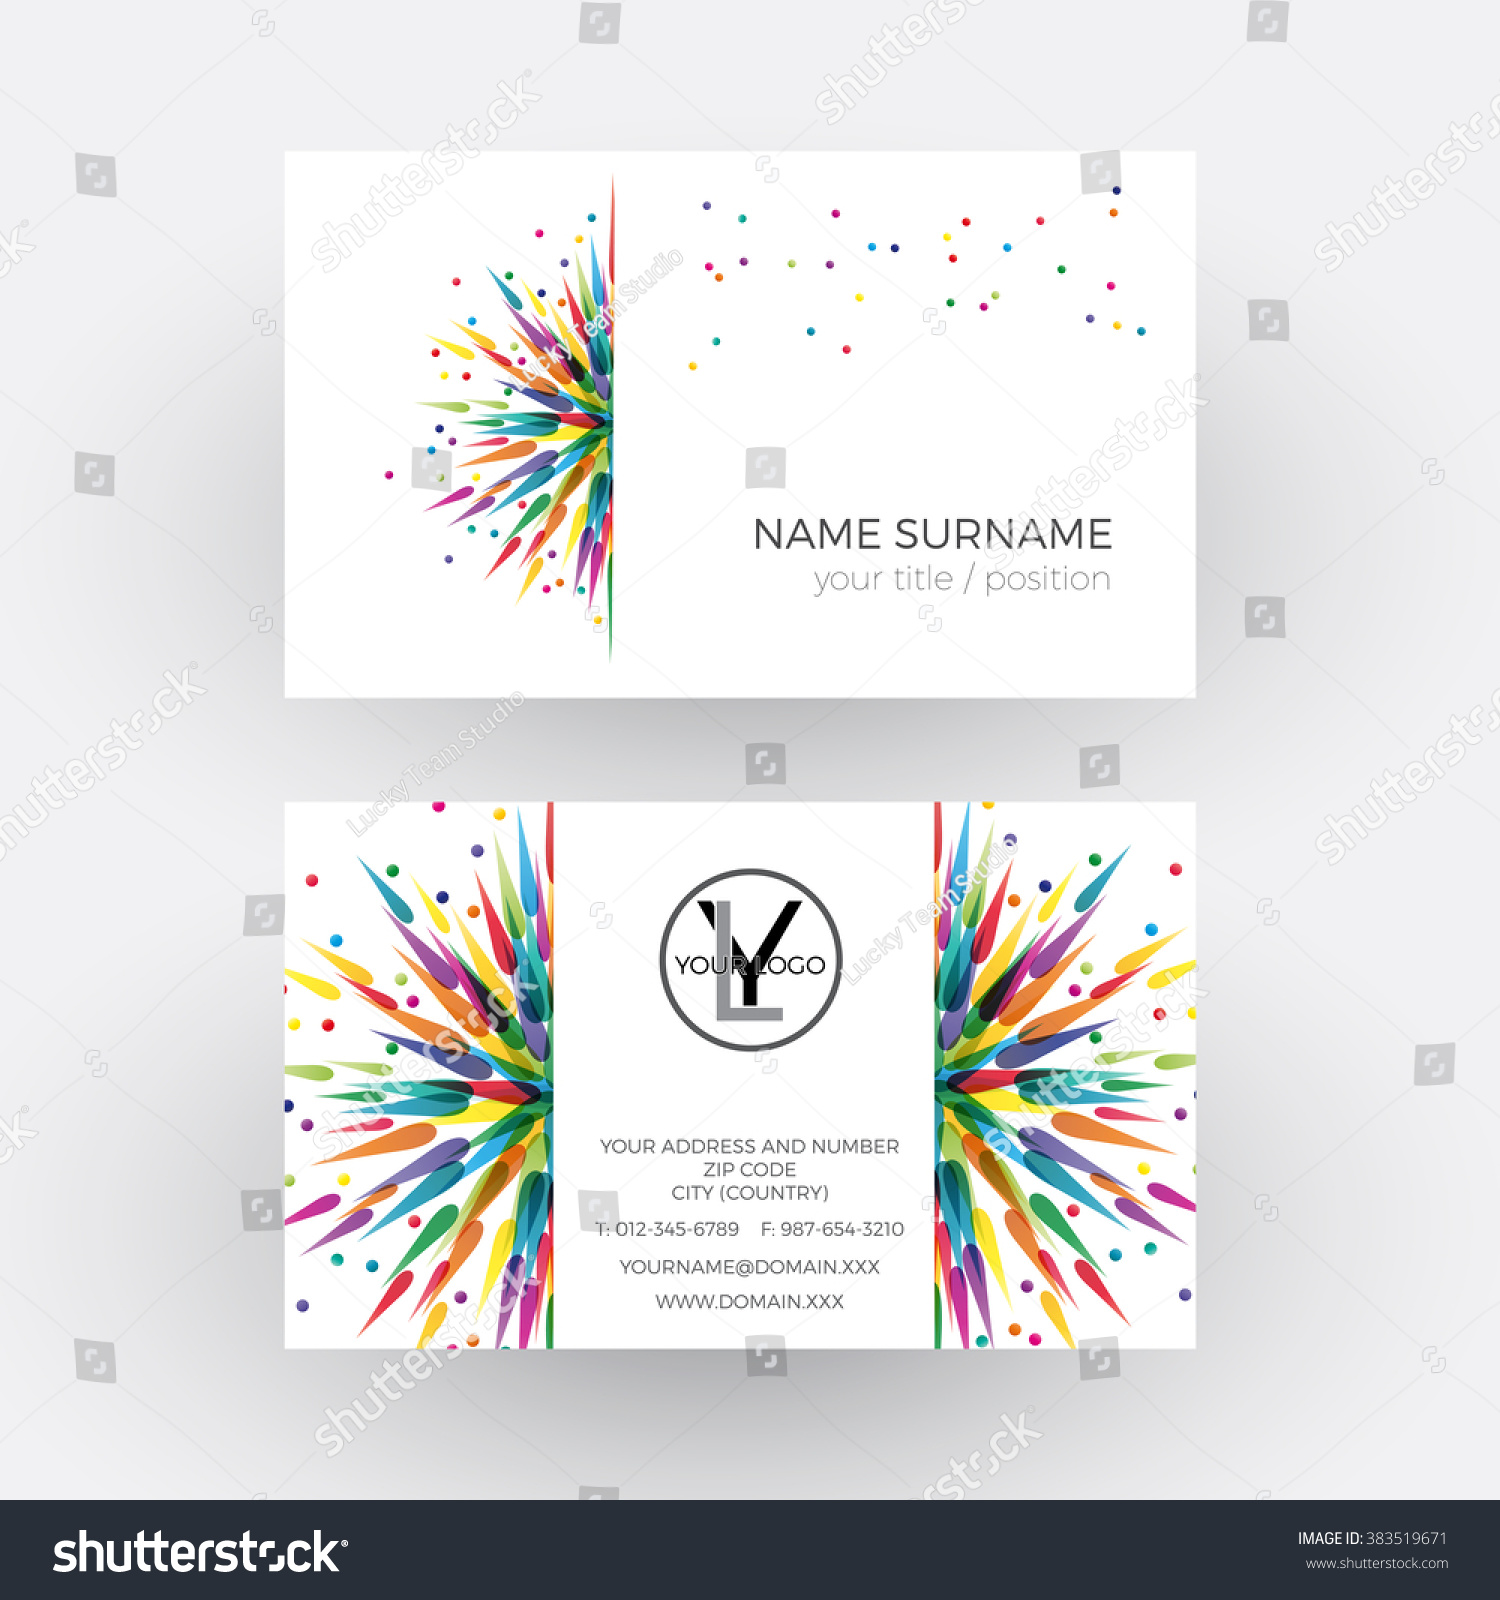 Vector Abstract Colored Splashes Graphic Designer Stock Vector